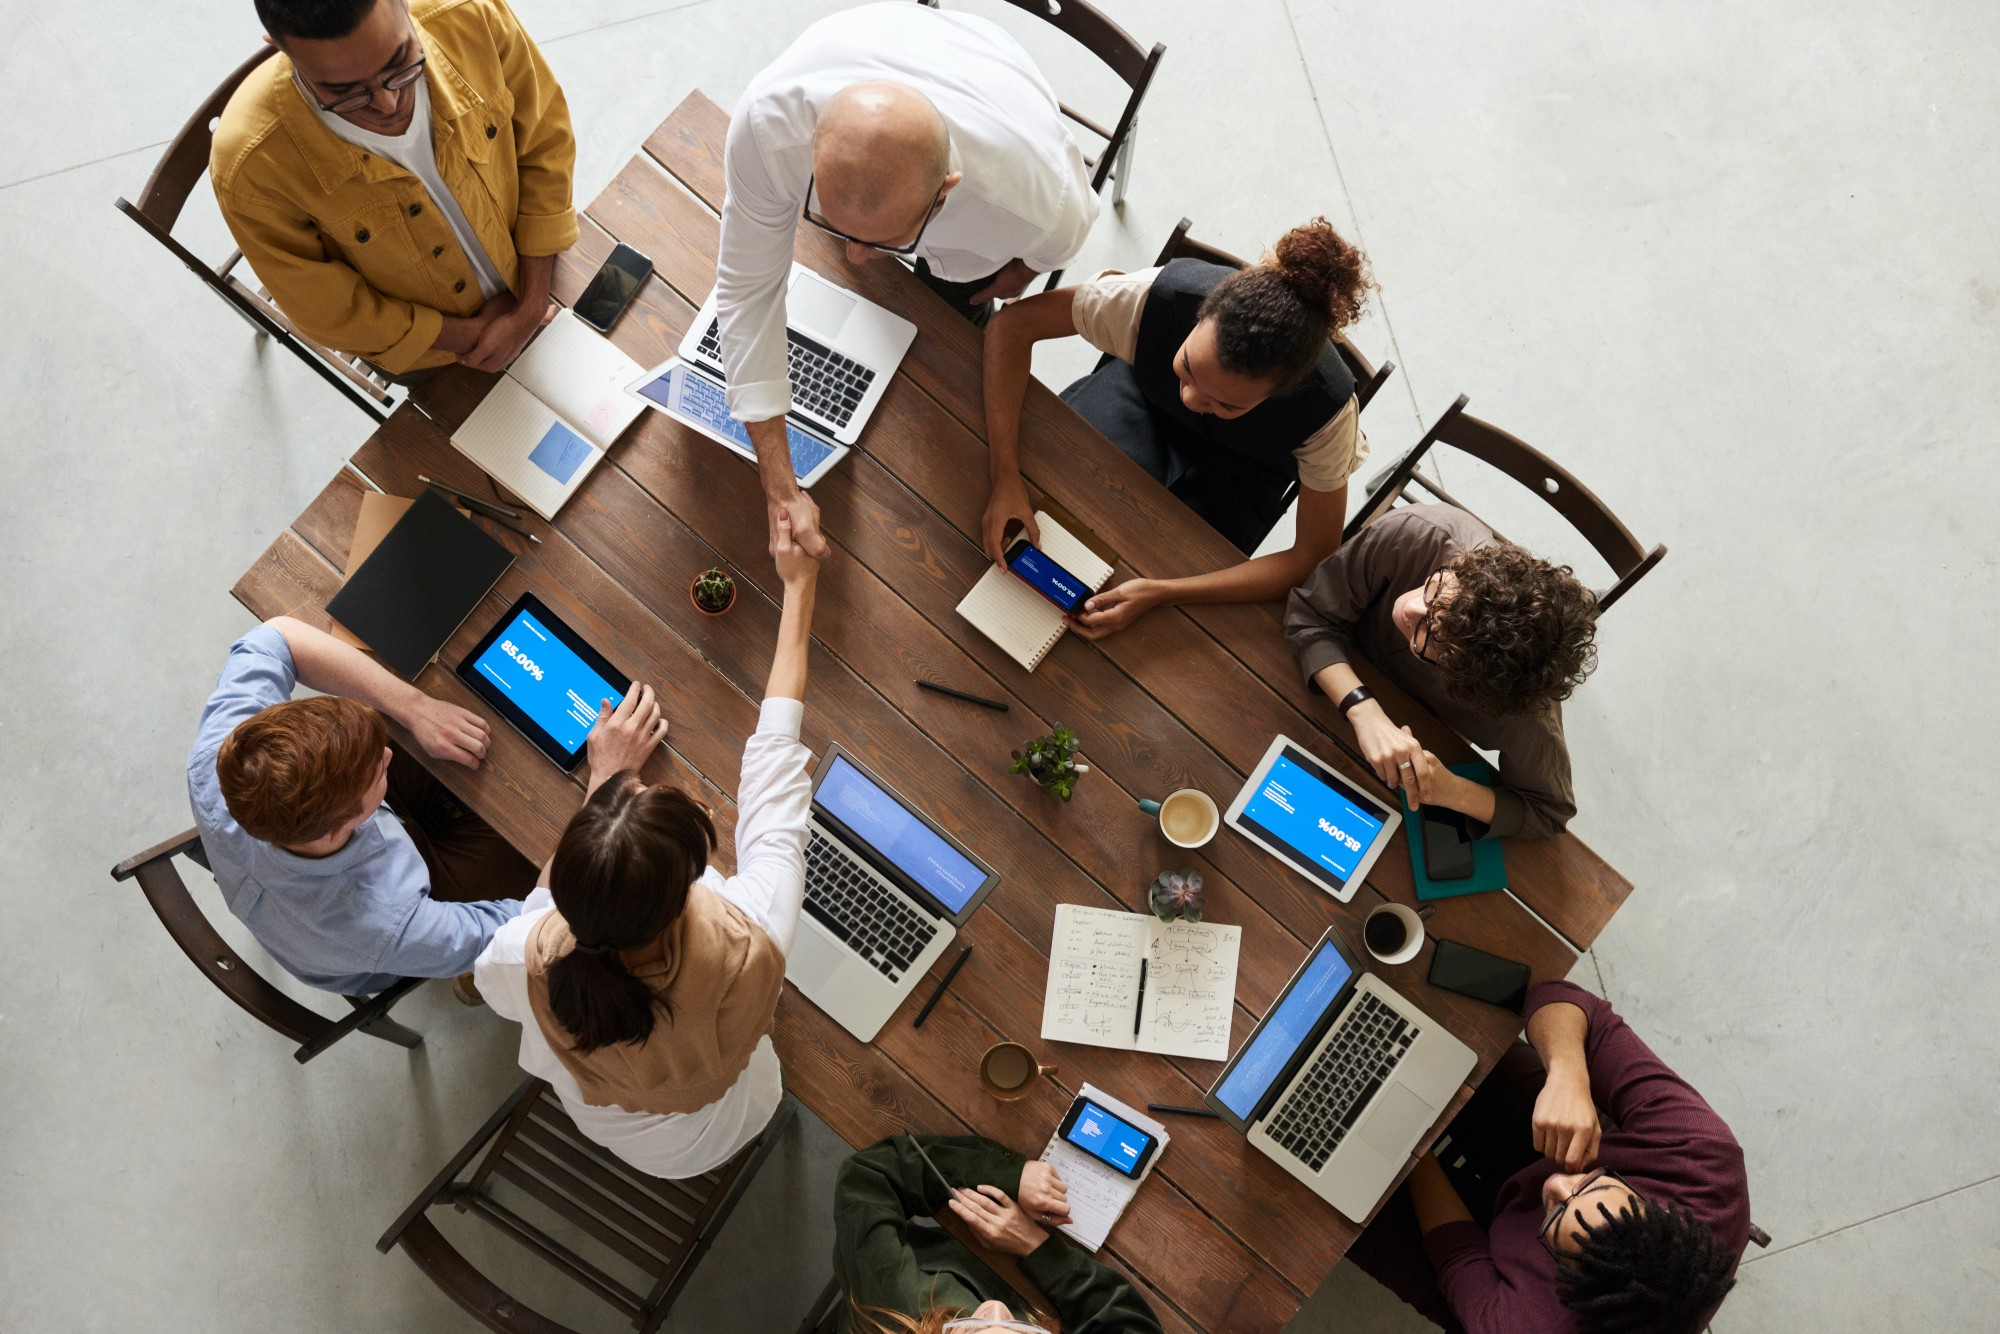 A Group Meeting: 3 Unimagined Daily Benefits Your Business Competitor Enjoys by Joining a Group